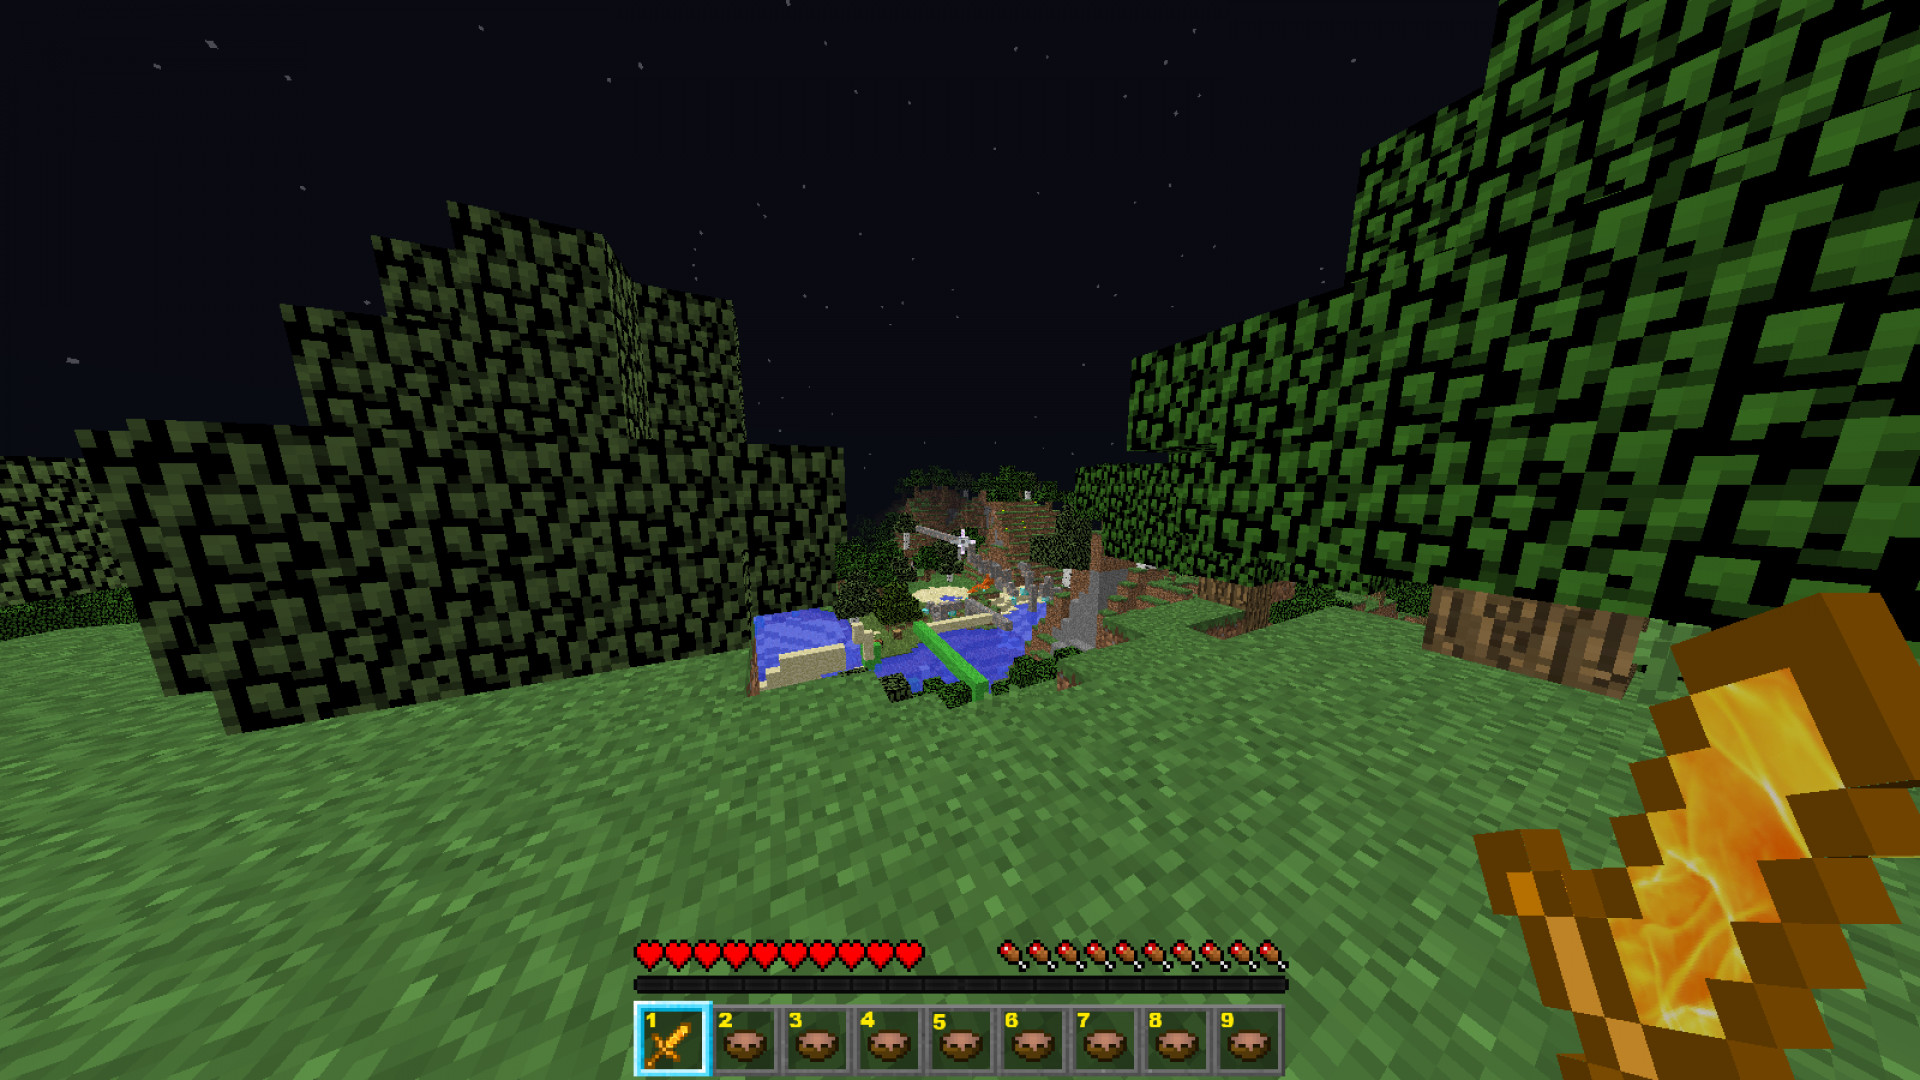 Soup-HG Overlay Pack 1.8